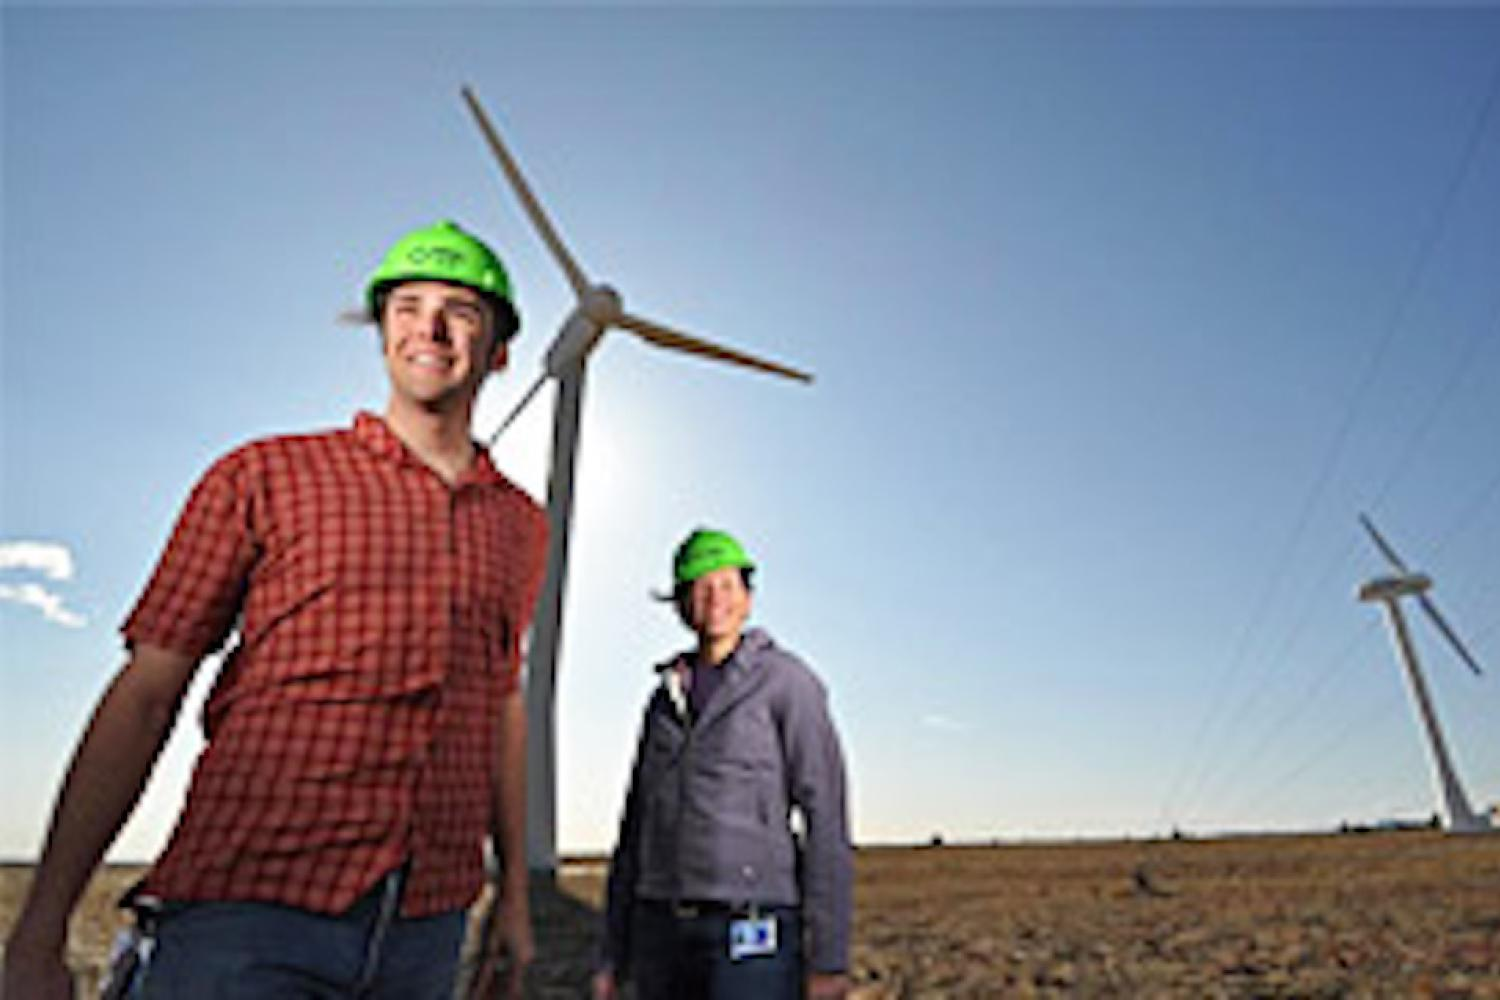 Workers in hard hats under Wind turbine